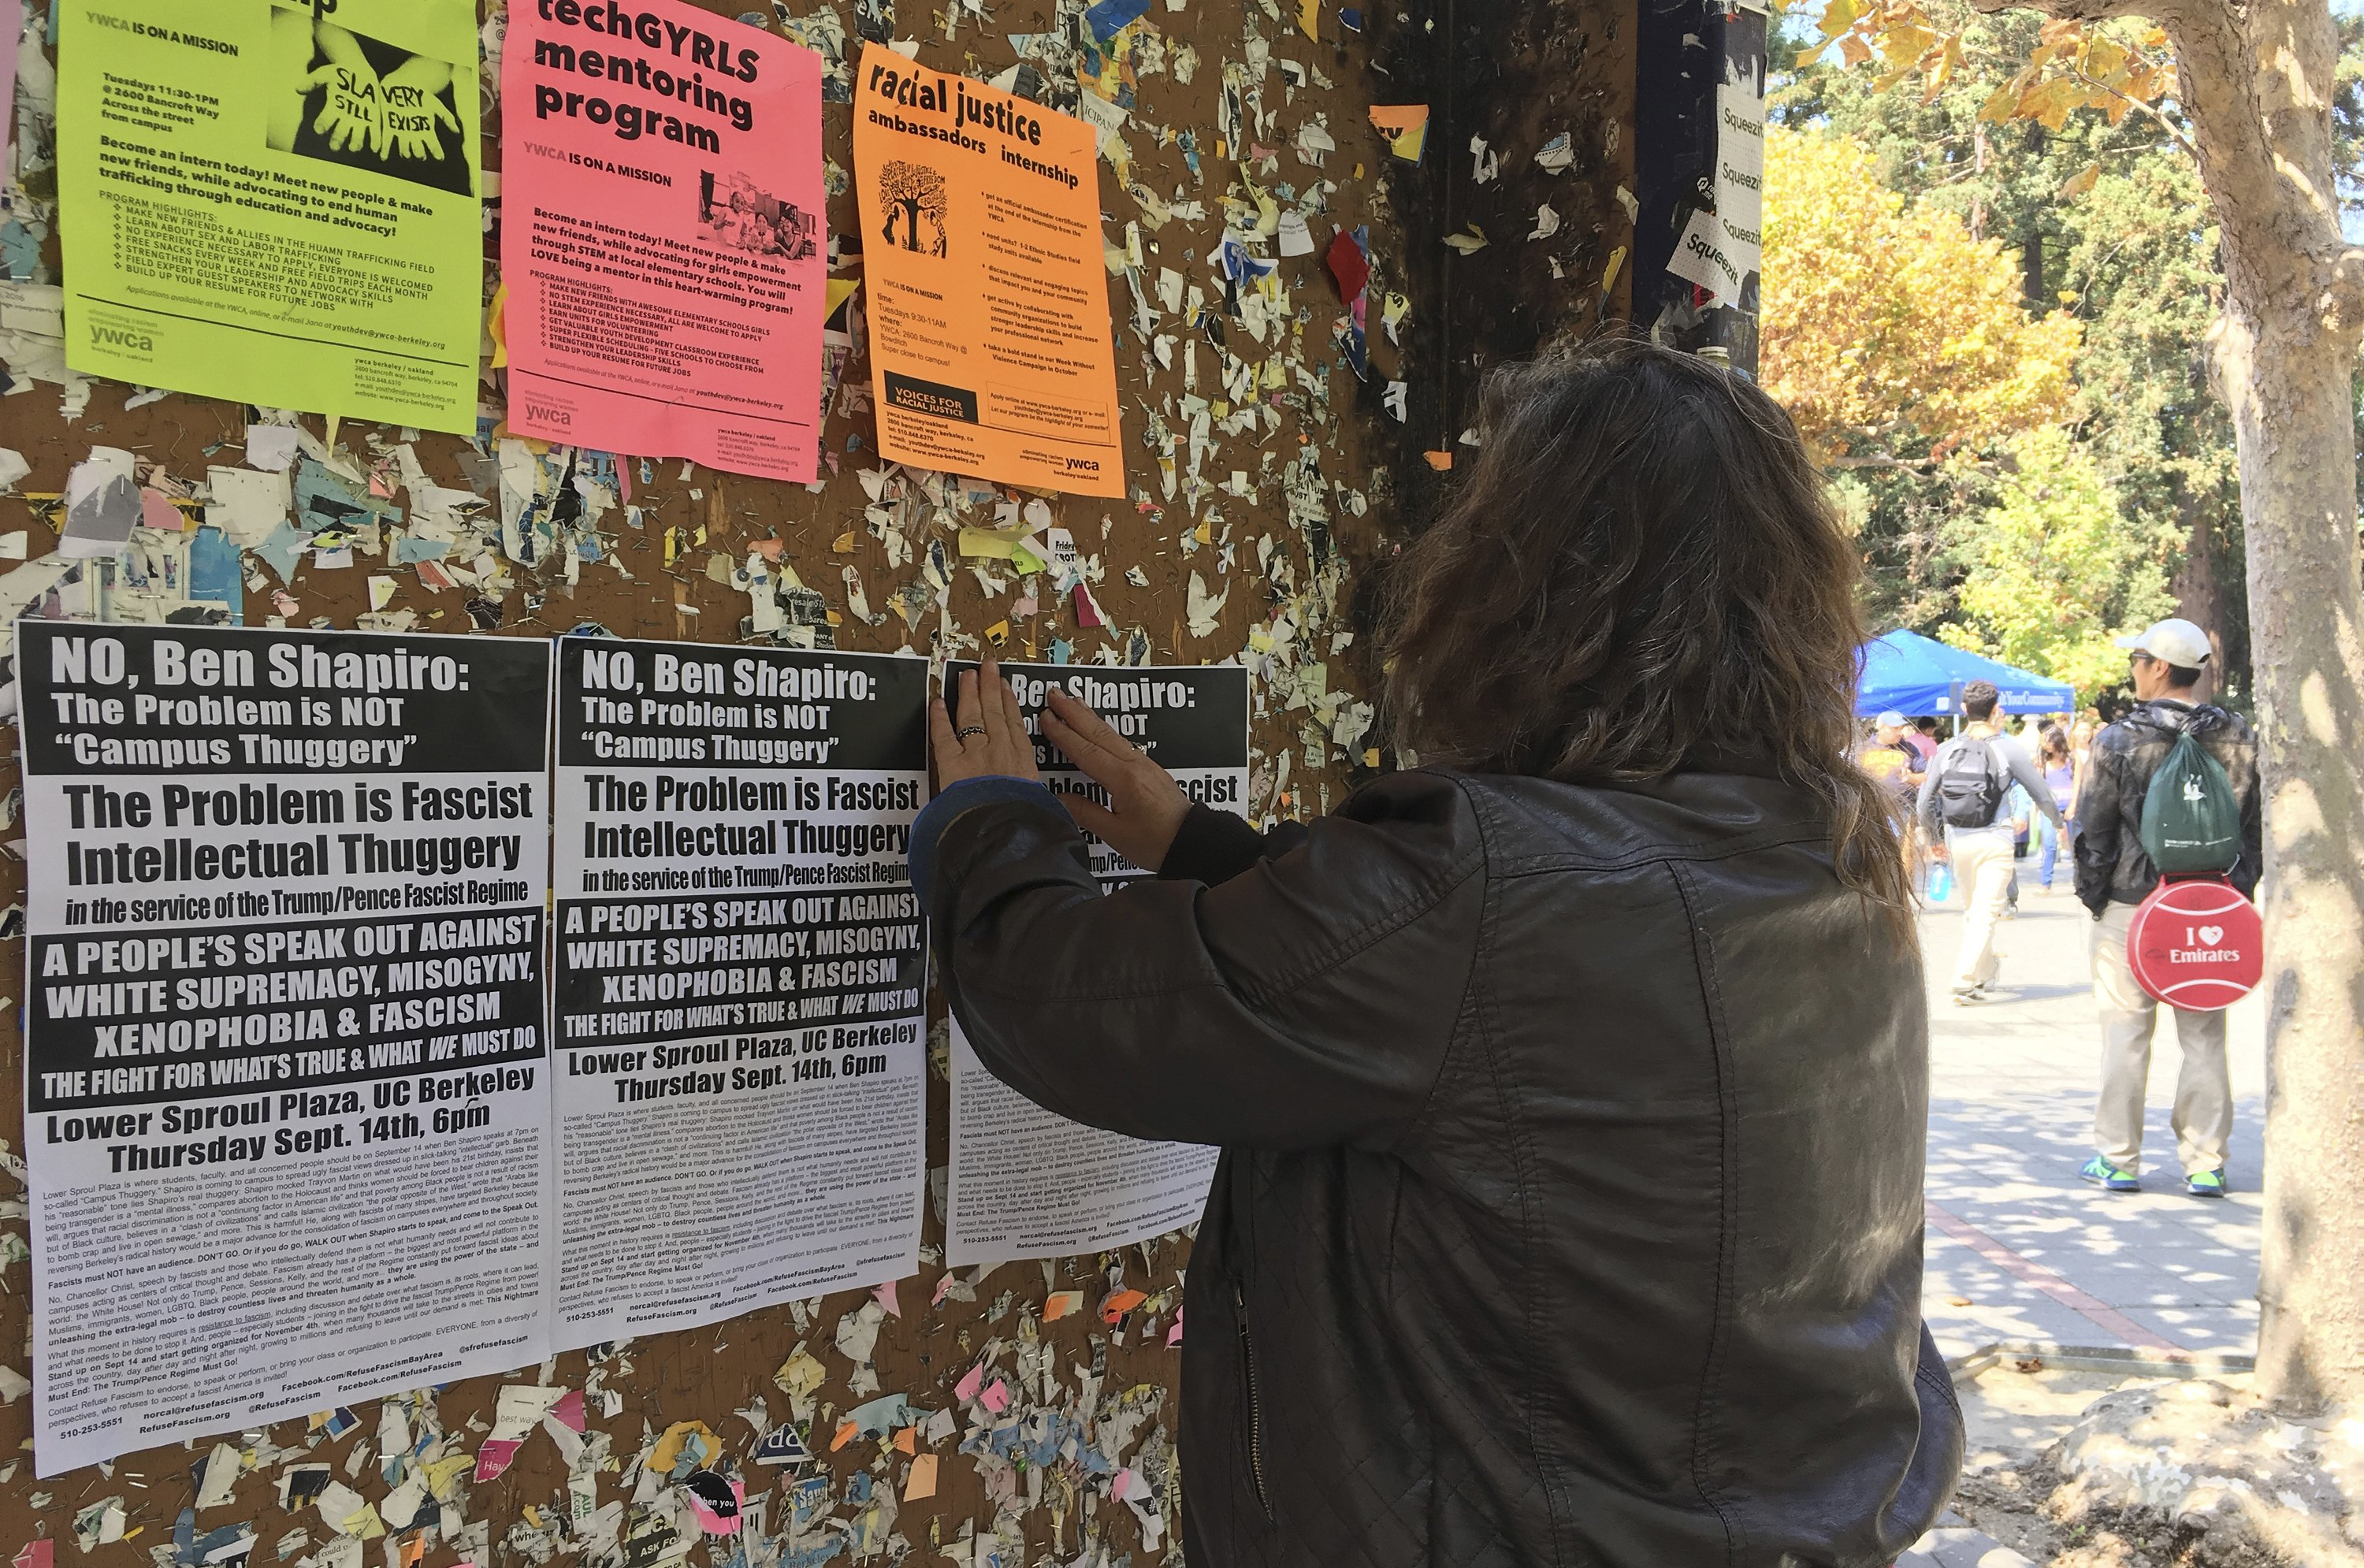 The Latest: Dozens line up to hear conservative at Berkeley